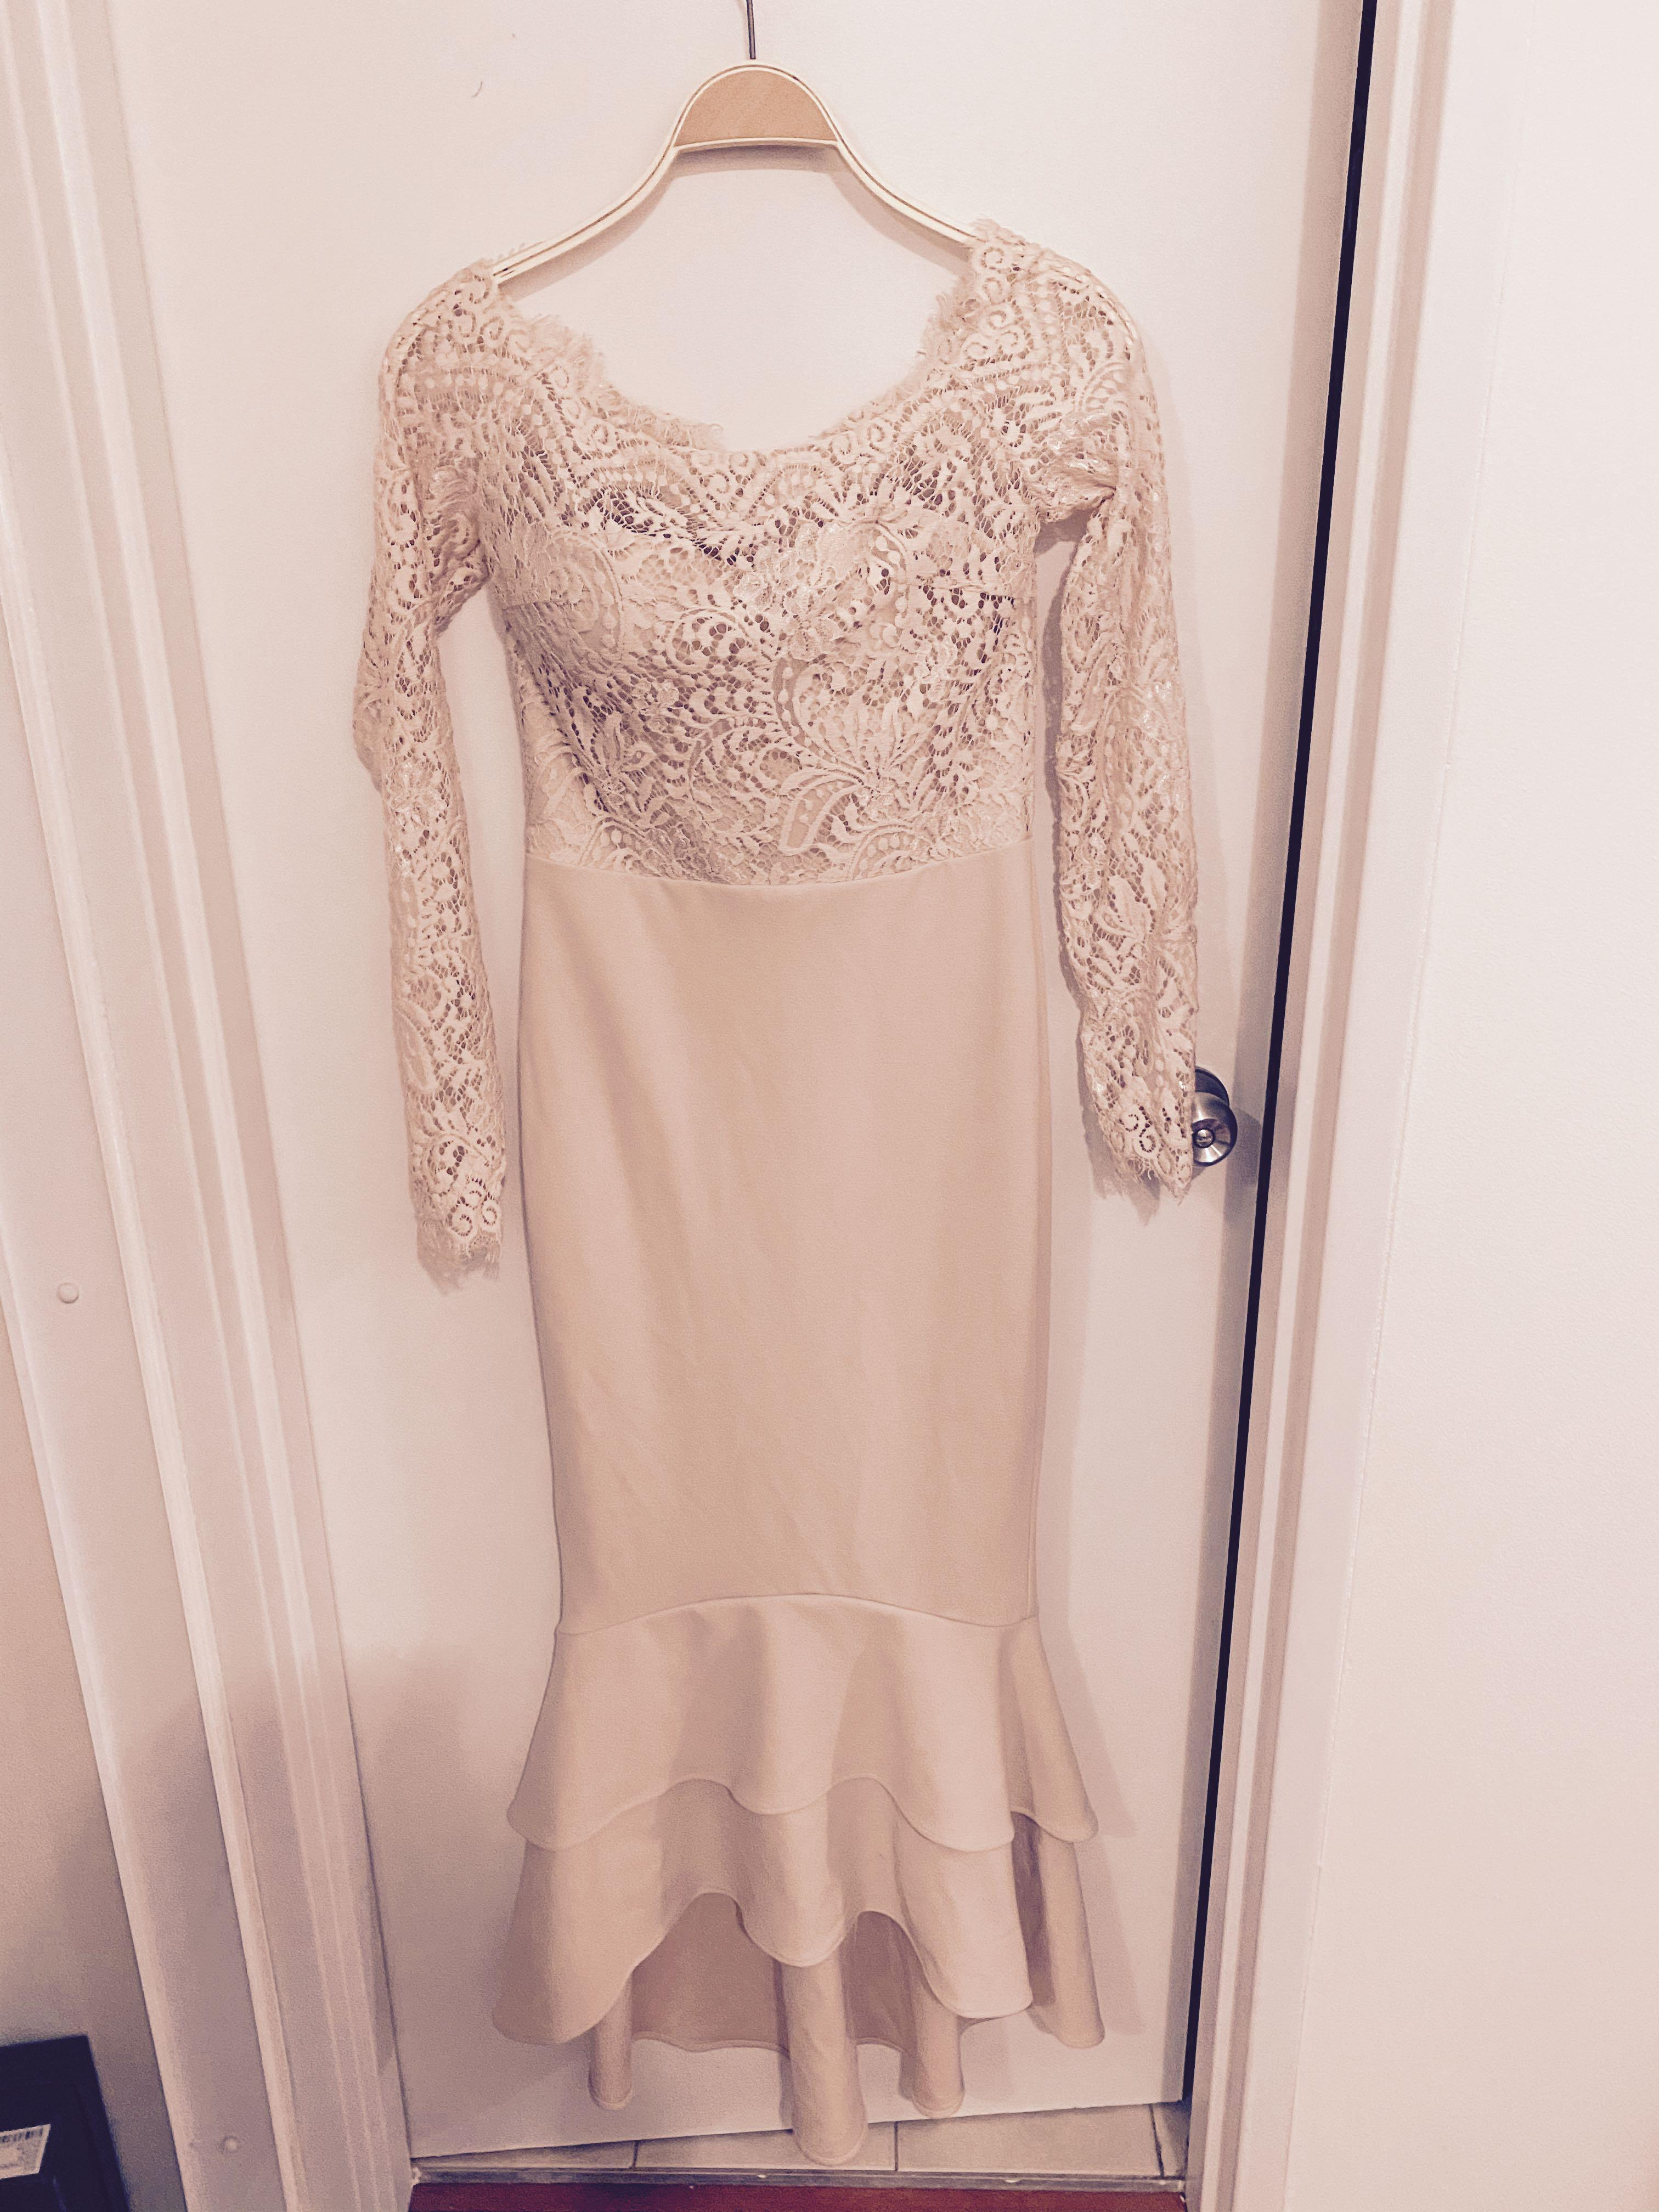 Beautiful formal dress - wore once as bridesmaid dress